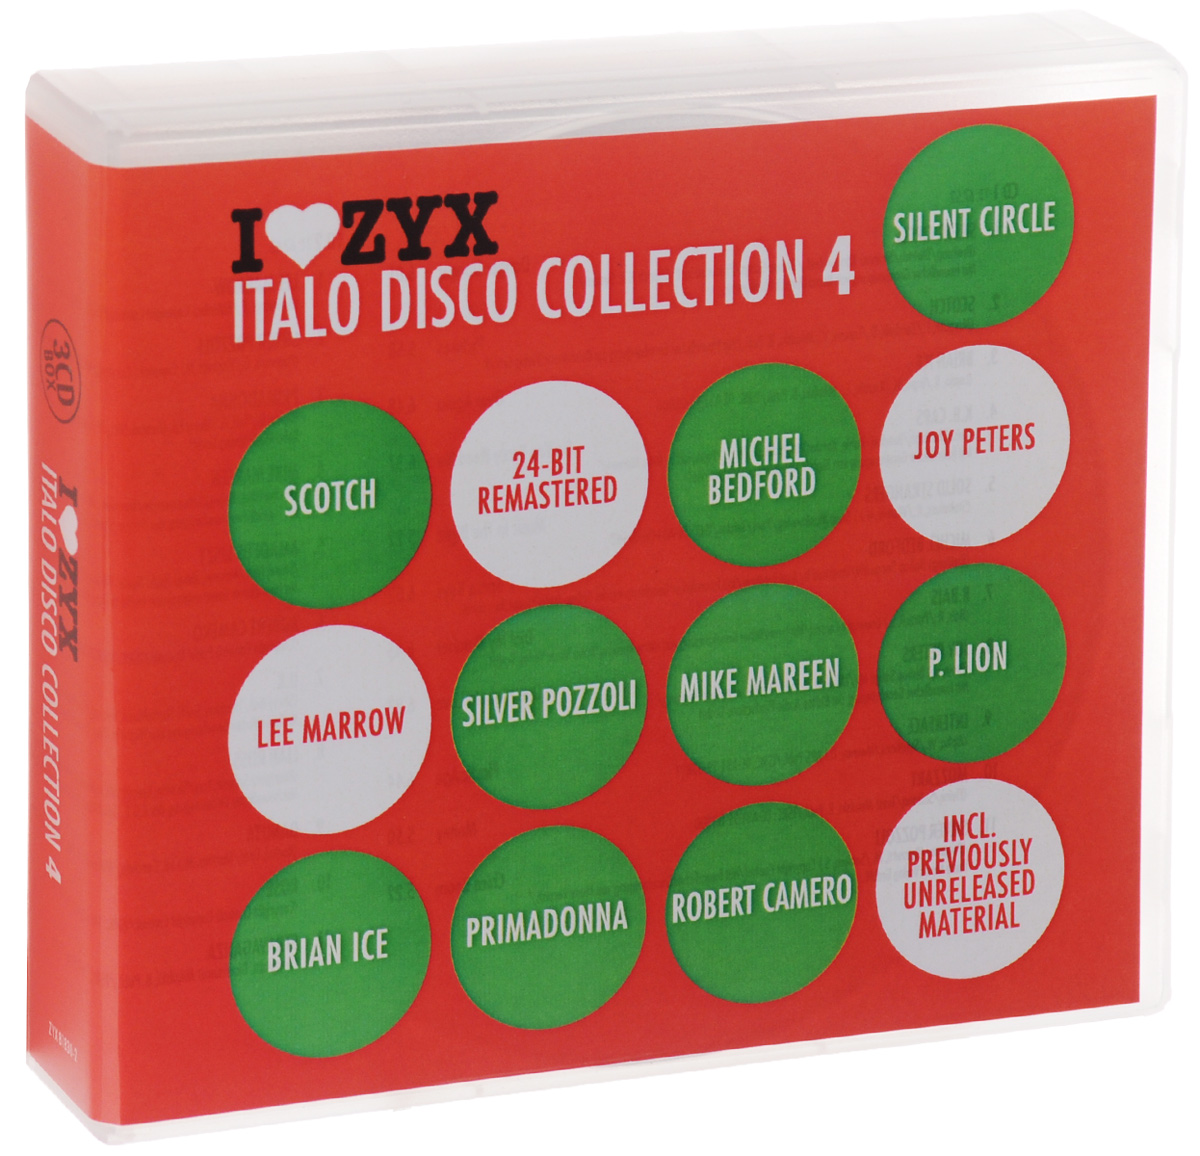 Italo Disco Collection 4 (3 CD)